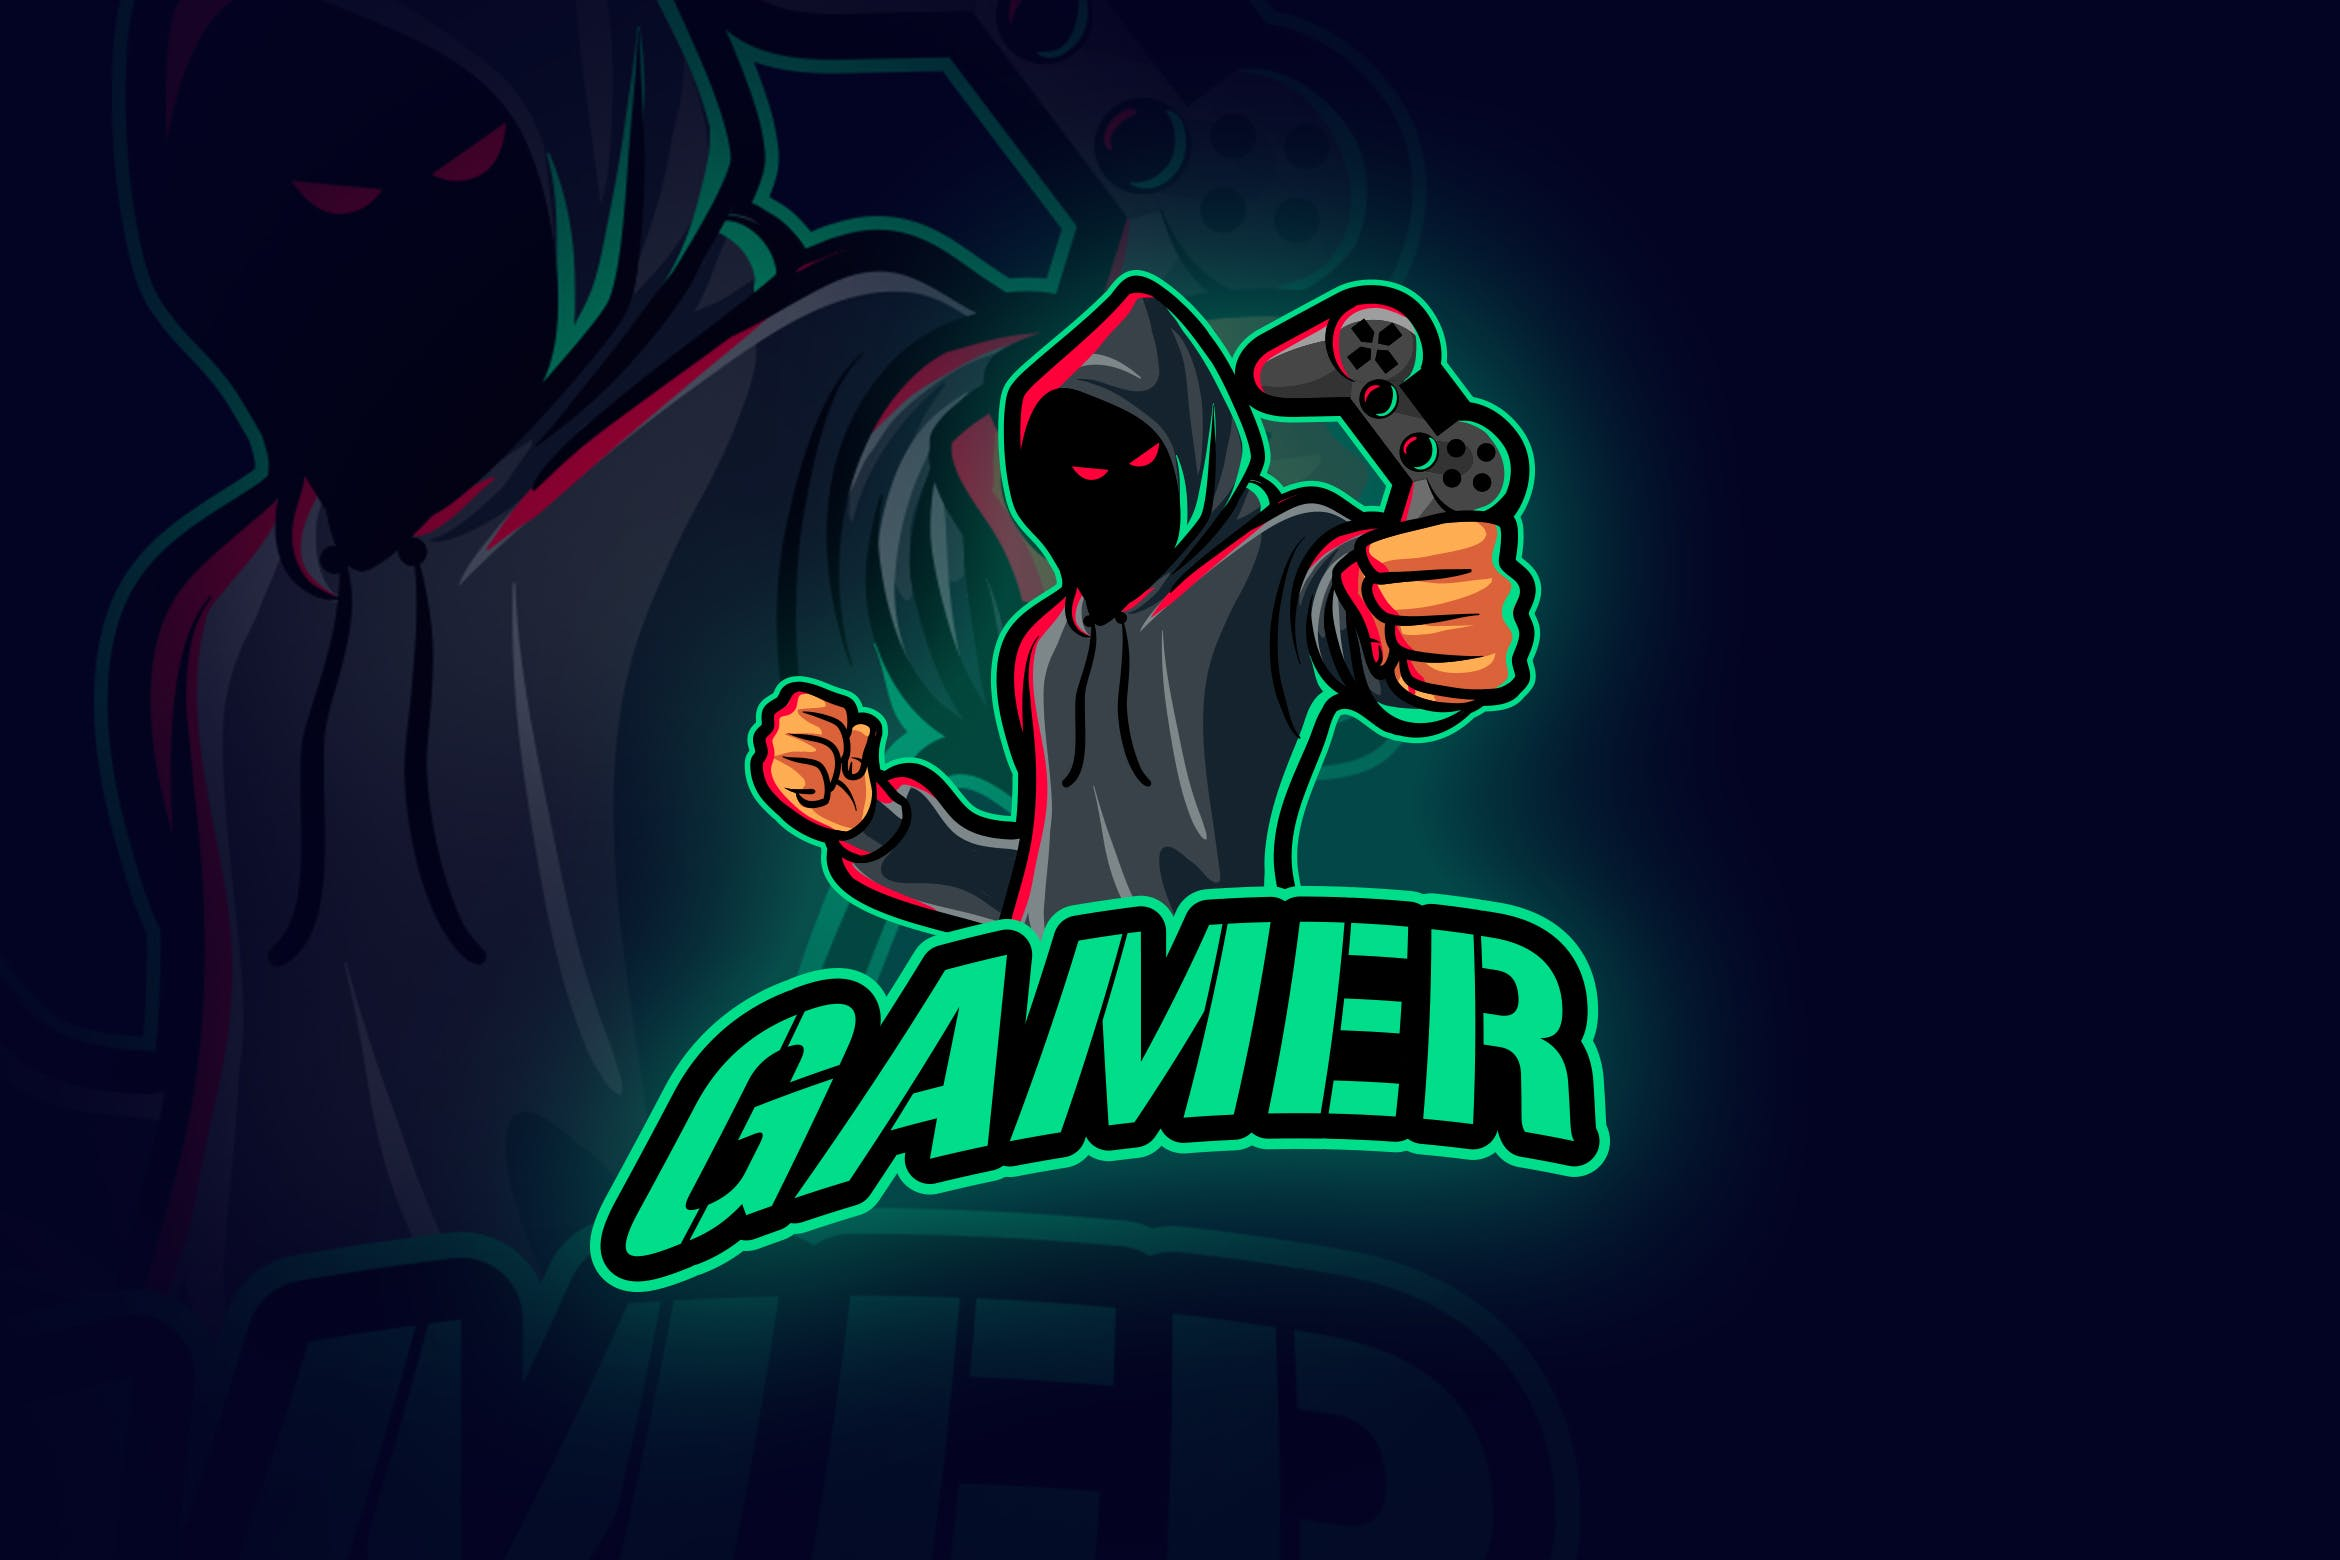 Anonymous Evil Hooded Gamer Mascot Logo by Suhandi on Envato Elements.